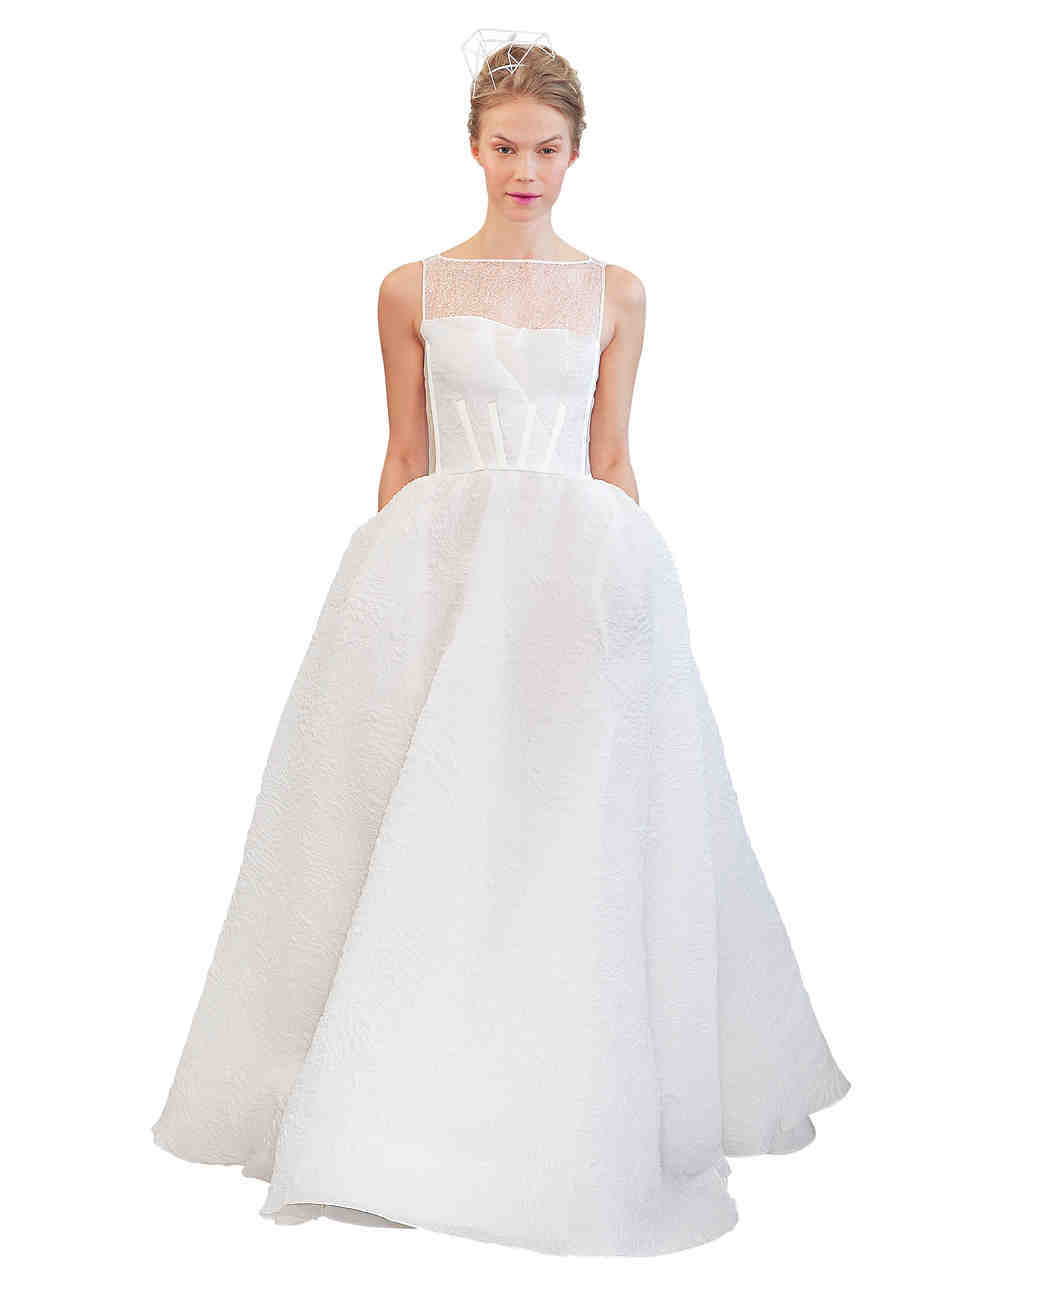 Lauren Conrad\'s Favorite Wedding Dresses | Martha Stewart Weddings